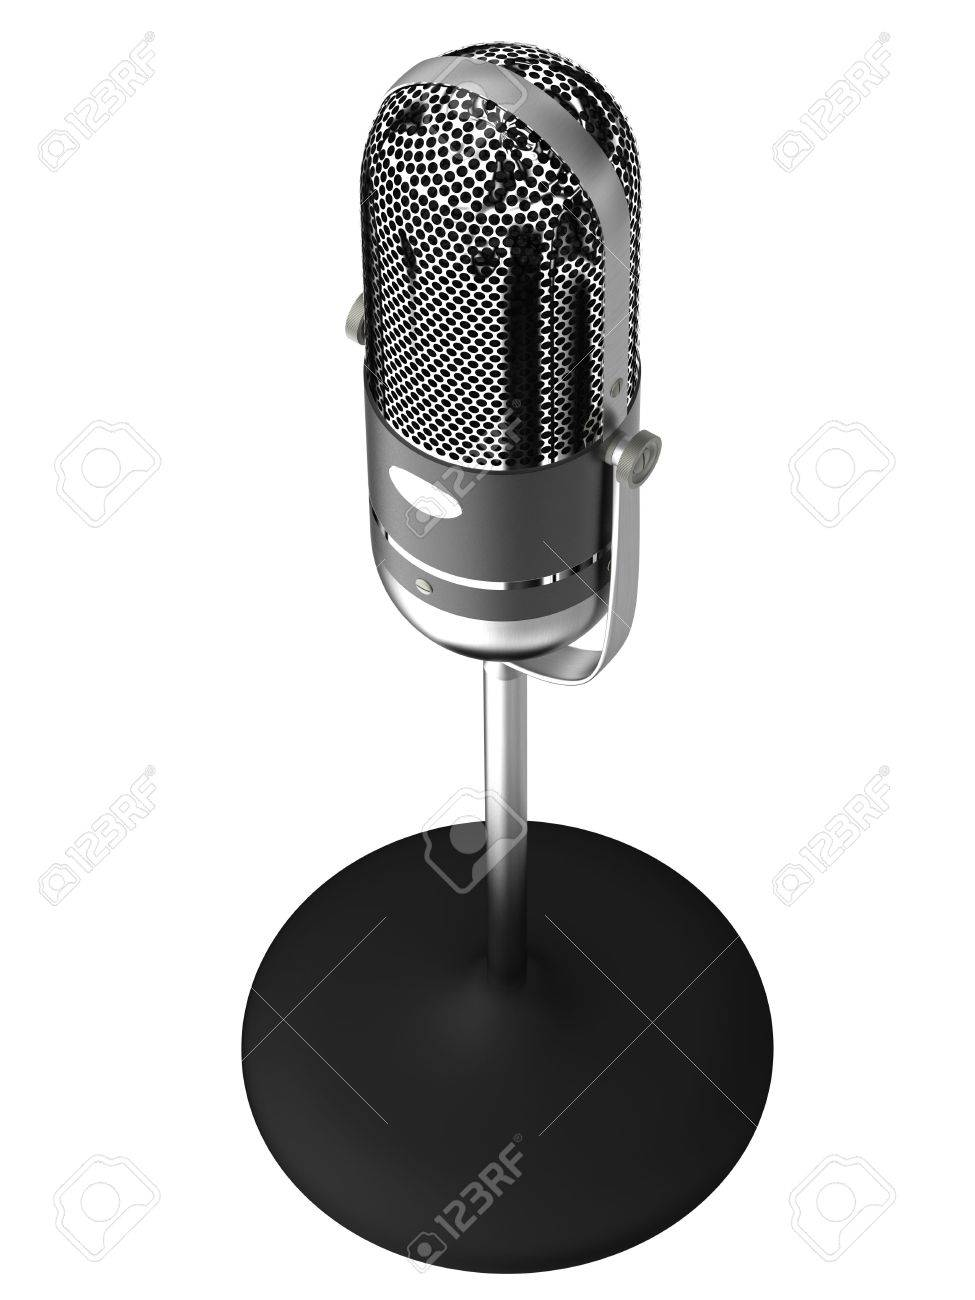 Vintage silver microphone isolated on white background Stock Photo - 7002520